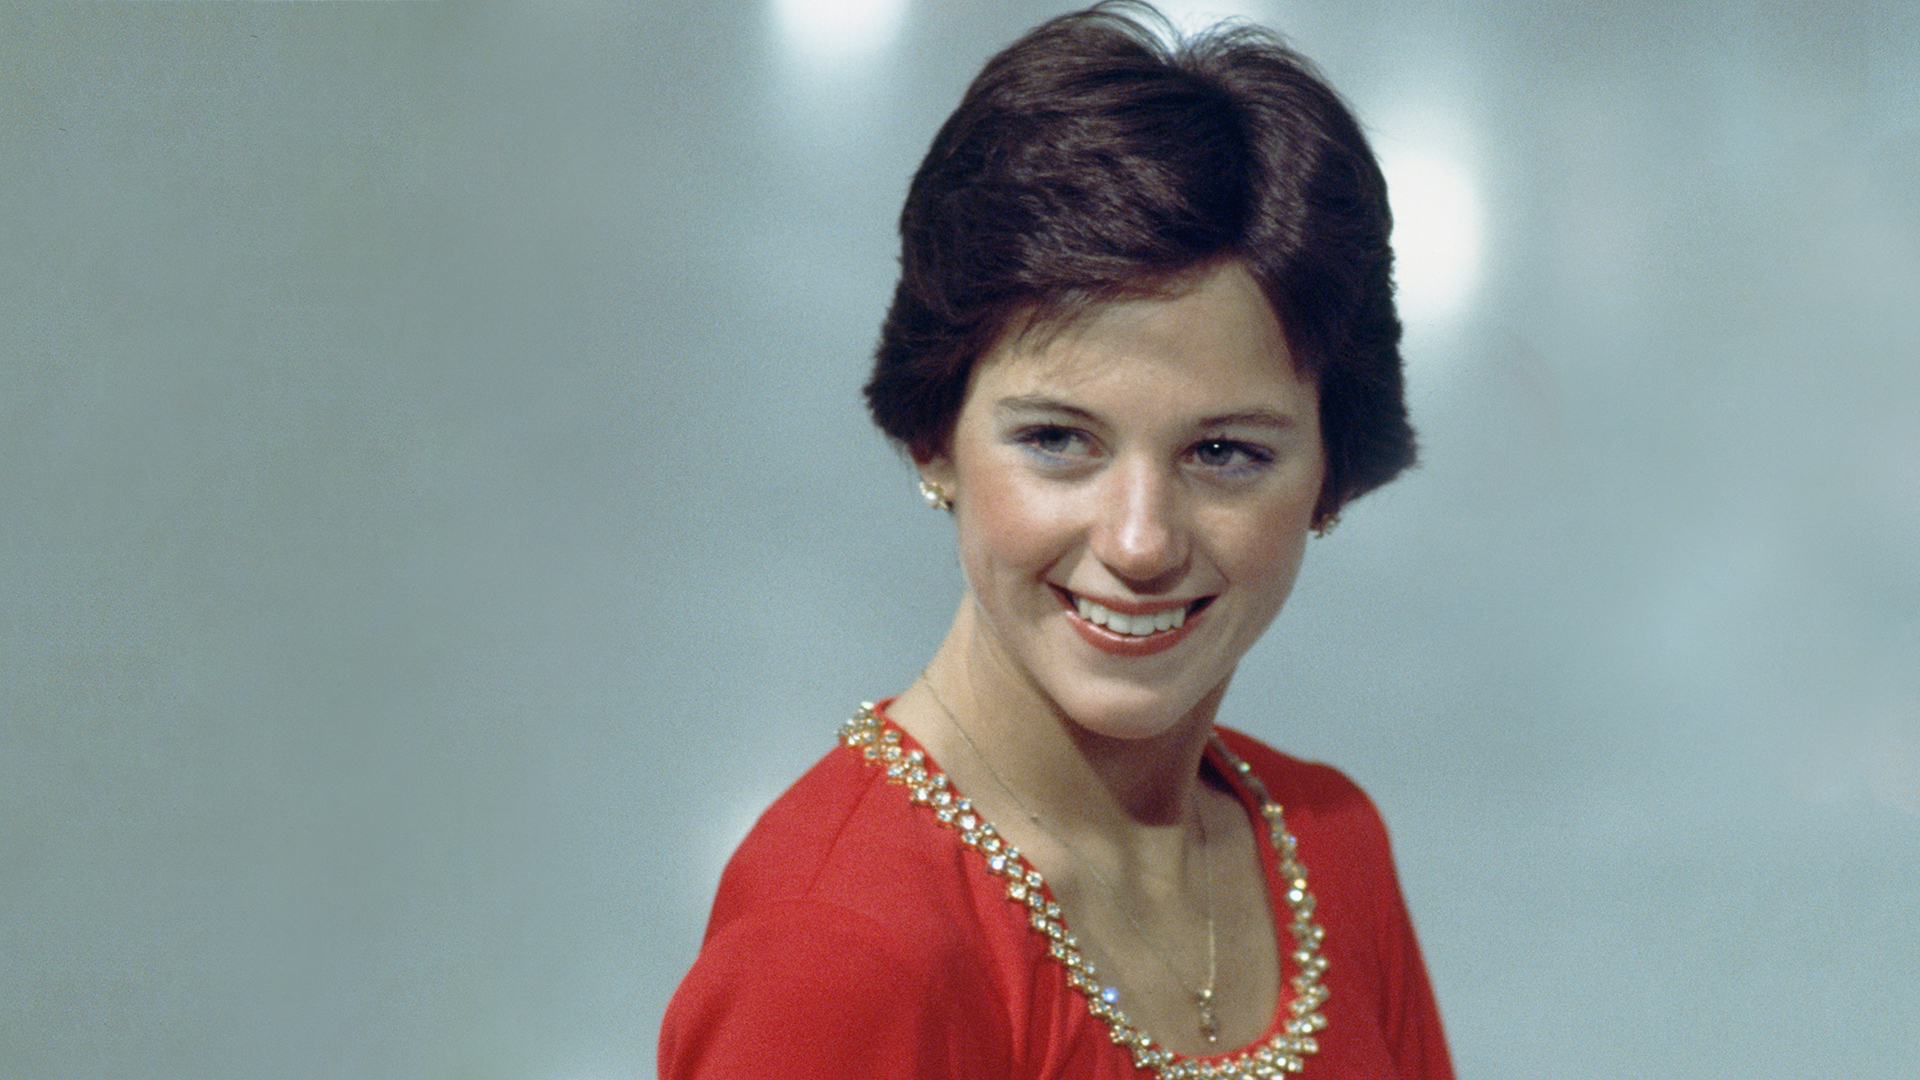 February 13, 1976: Dorothy Hamill Won Gold, Started a Hairstyle Craze and Became the Most In-Demand Figure Skater